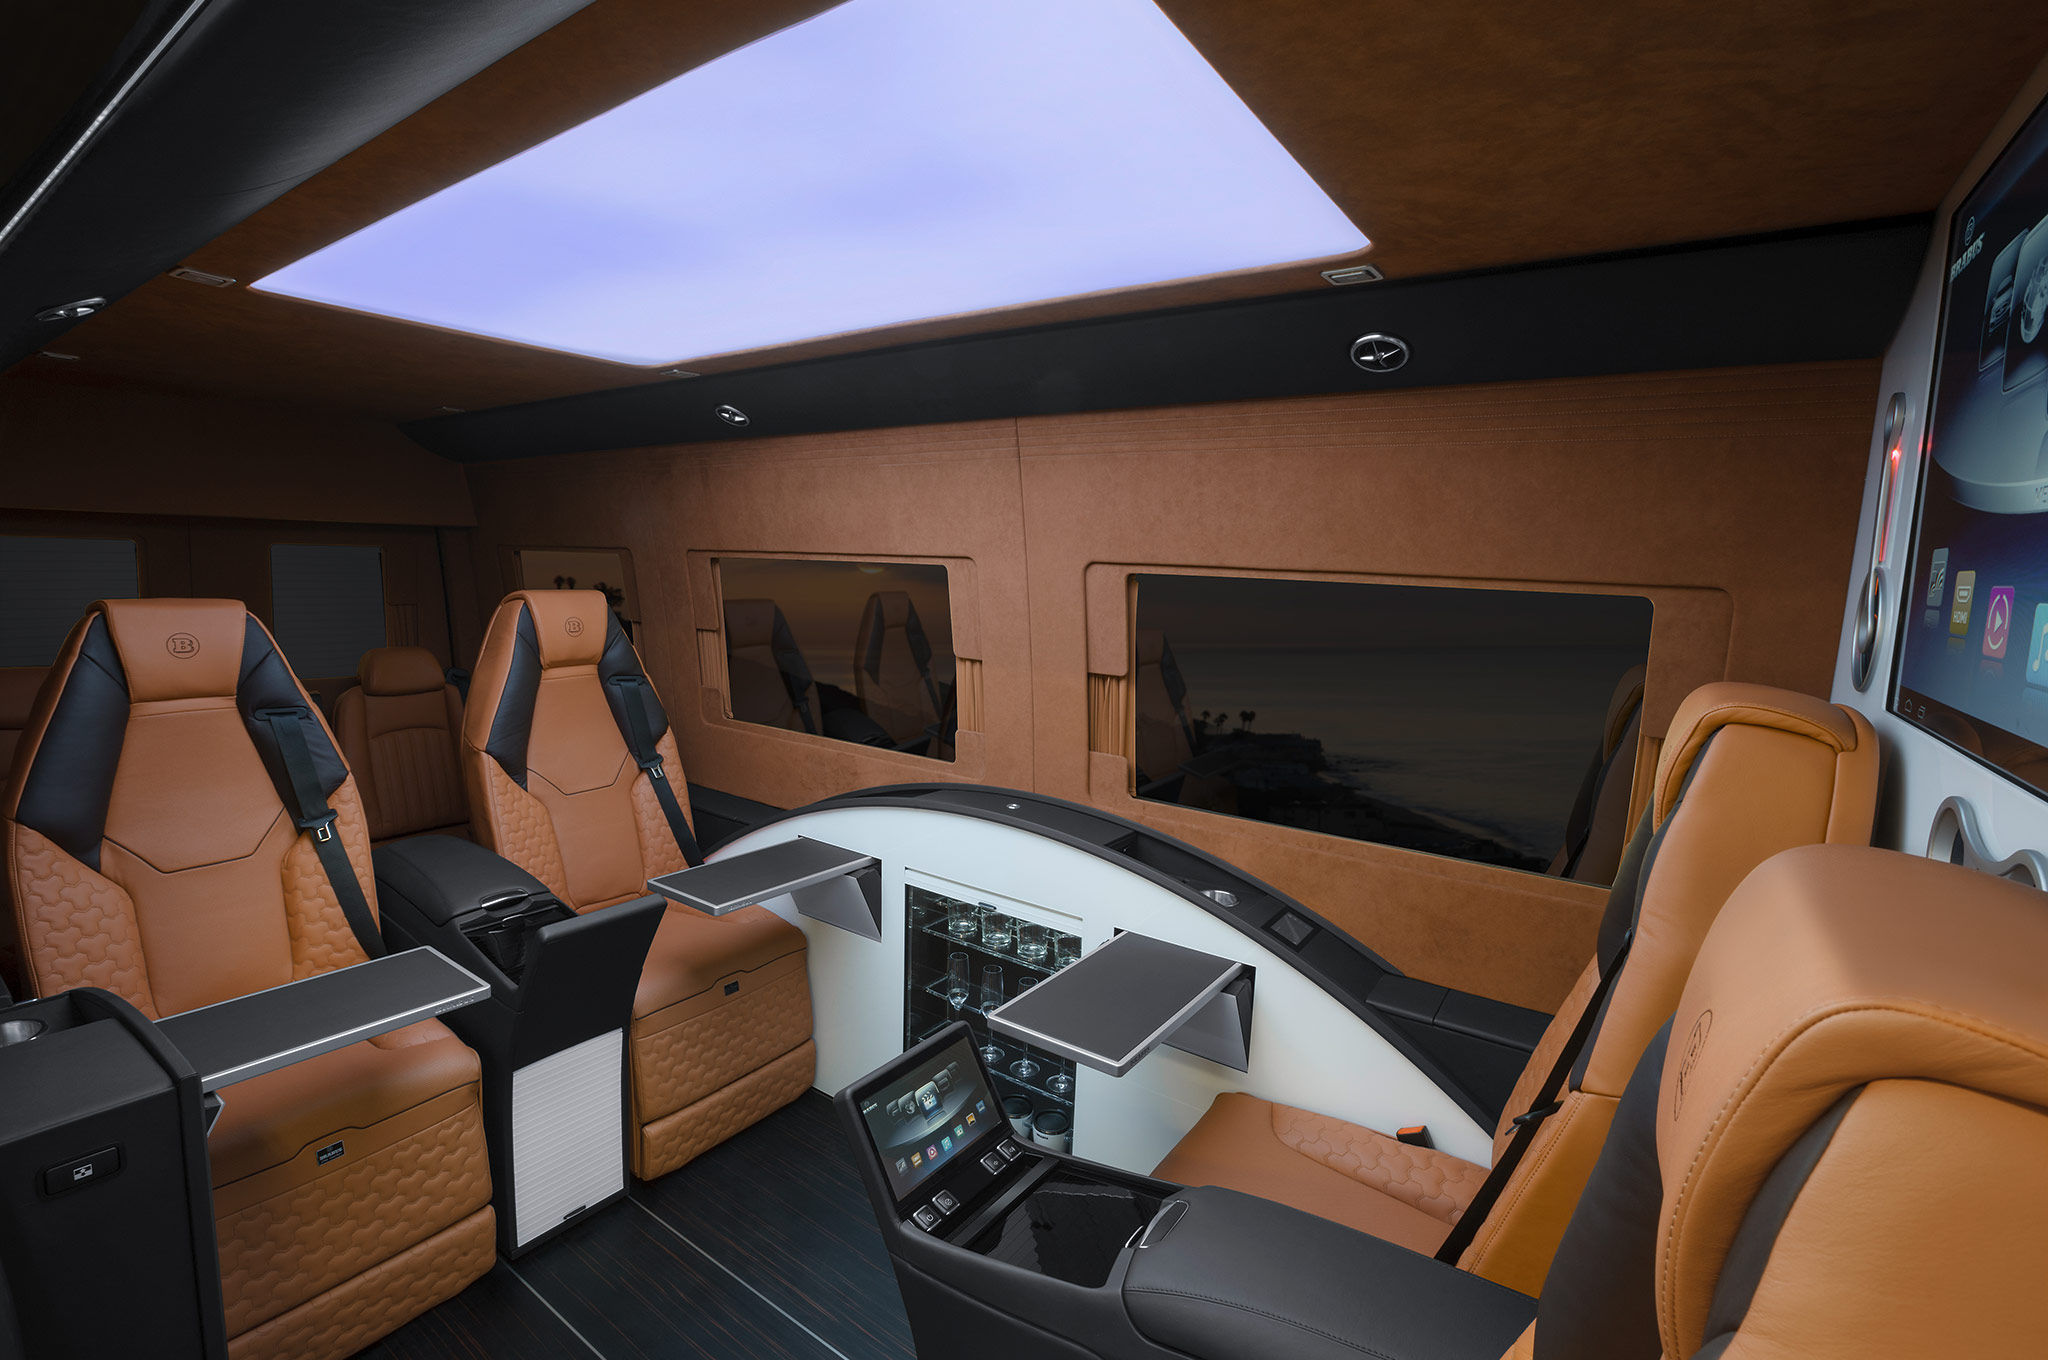 ' ' from the web at 'http://st.automobilemag.com/uploads/sites/11/2014/08/Brabus-Mercedes-Benz-Sprinter-Business-Lounge-interior.jpg'